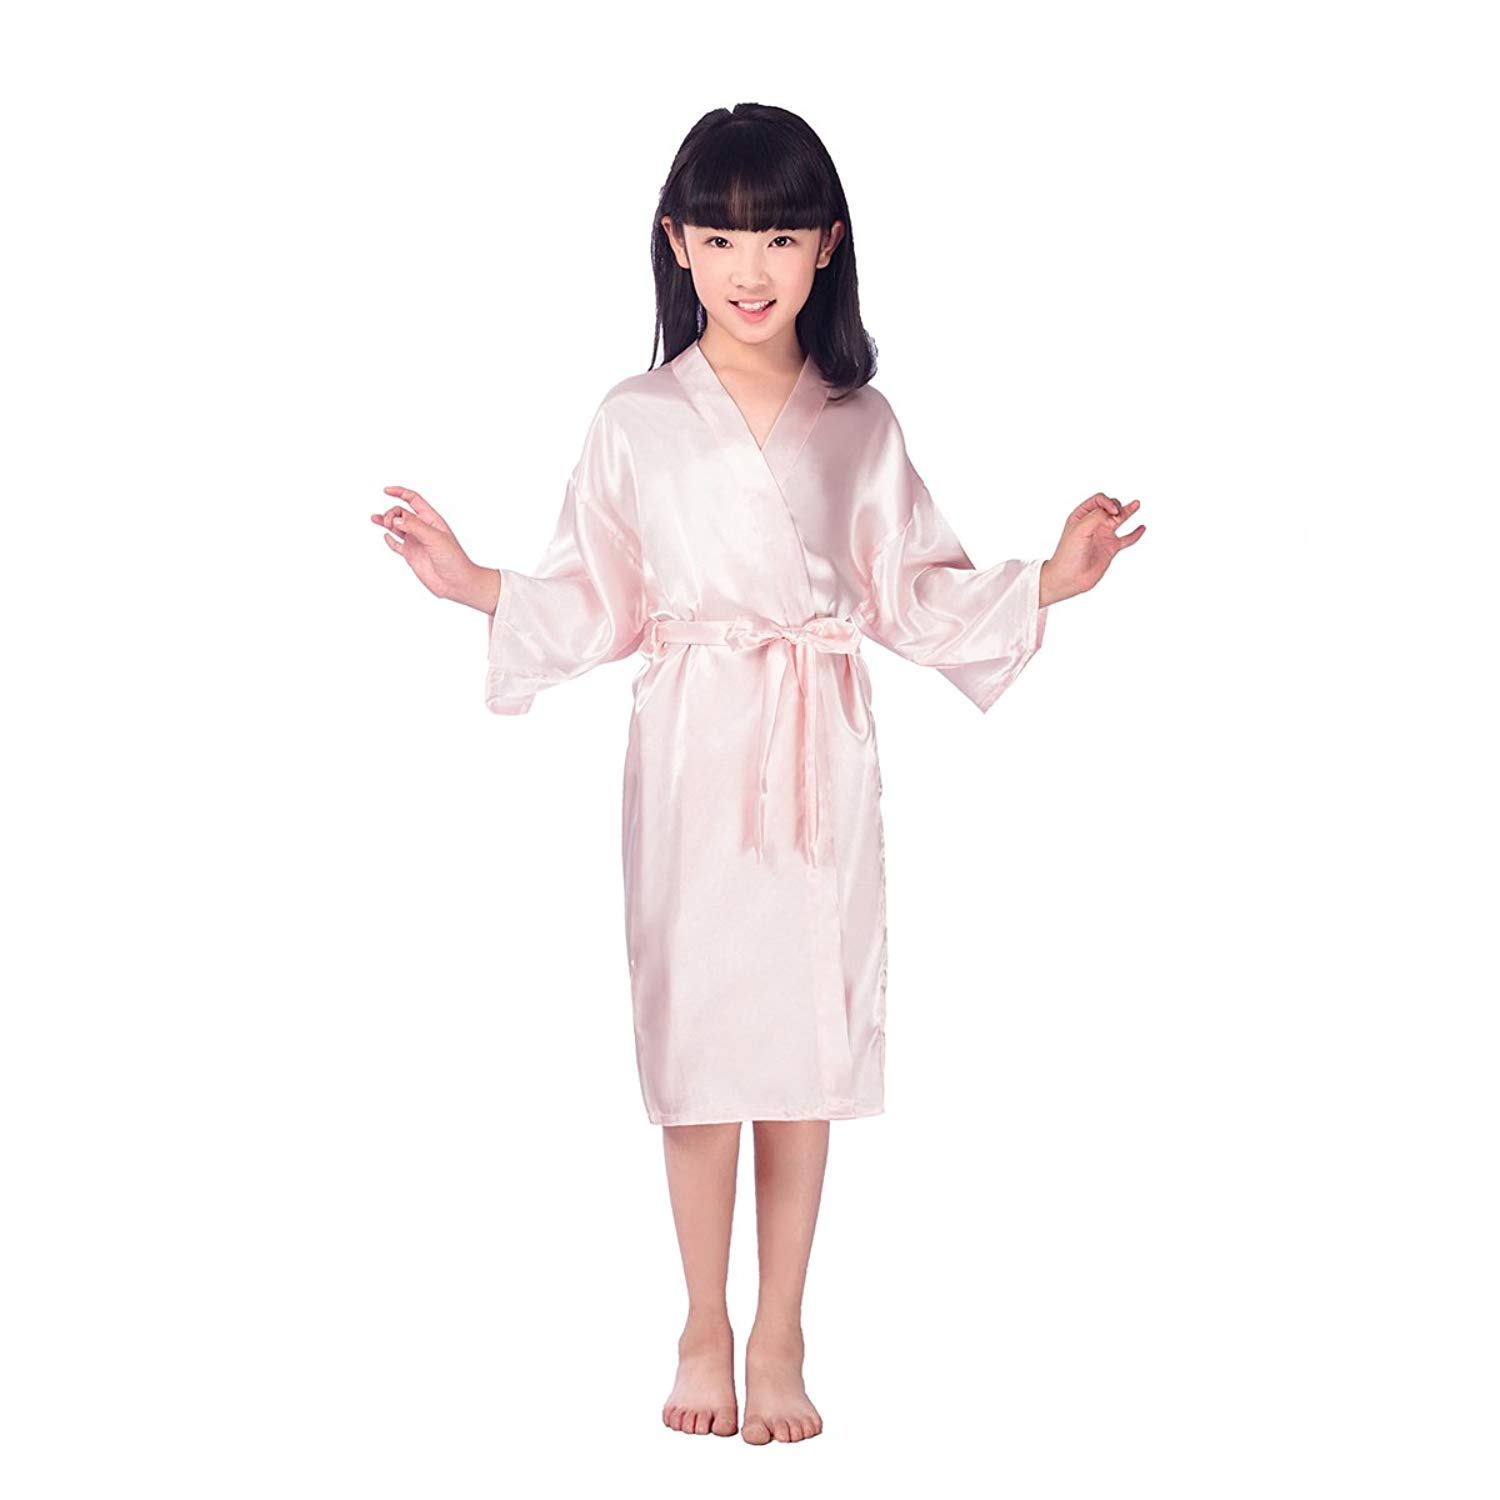 98a2f4bf46 Get Quotations · OULII Kids Robe Satin Kimono Bathrobe Nightgown For Spa  Party Wedding Birthday Size 14 (Pink